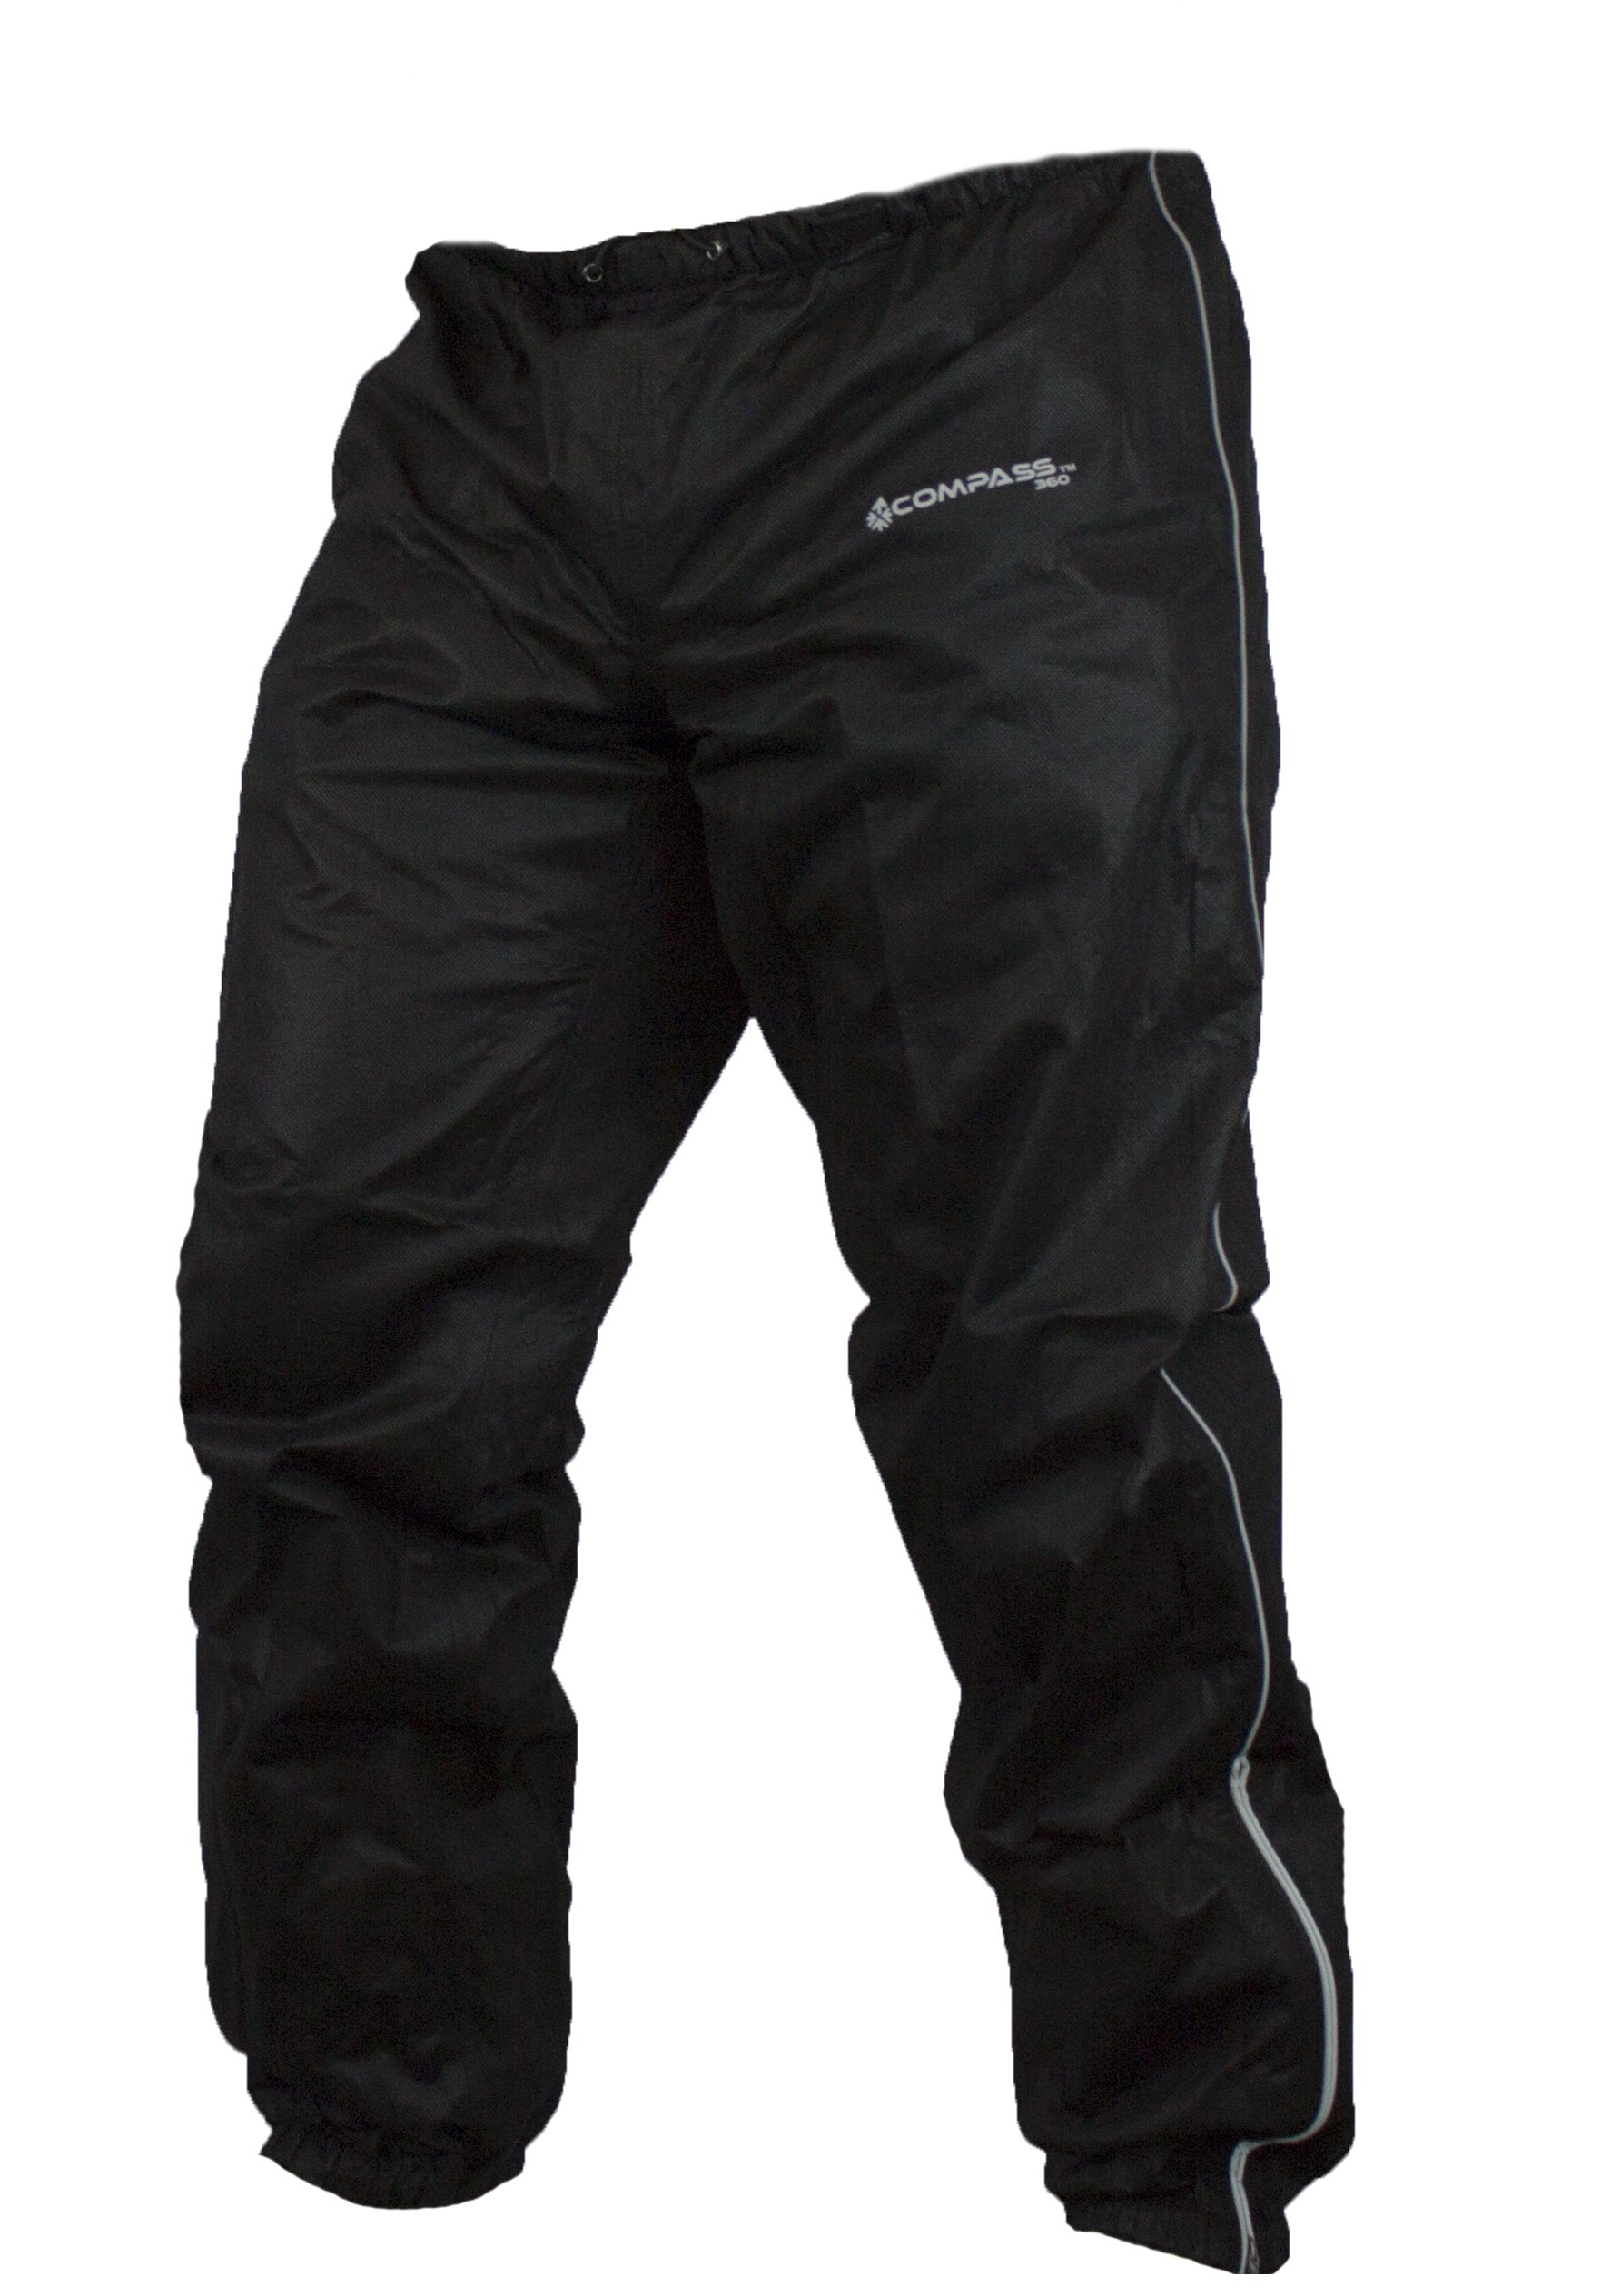 COMPASS 360 Roadtek Reflective Riding Rain Pants, Small, Black by COMPASS